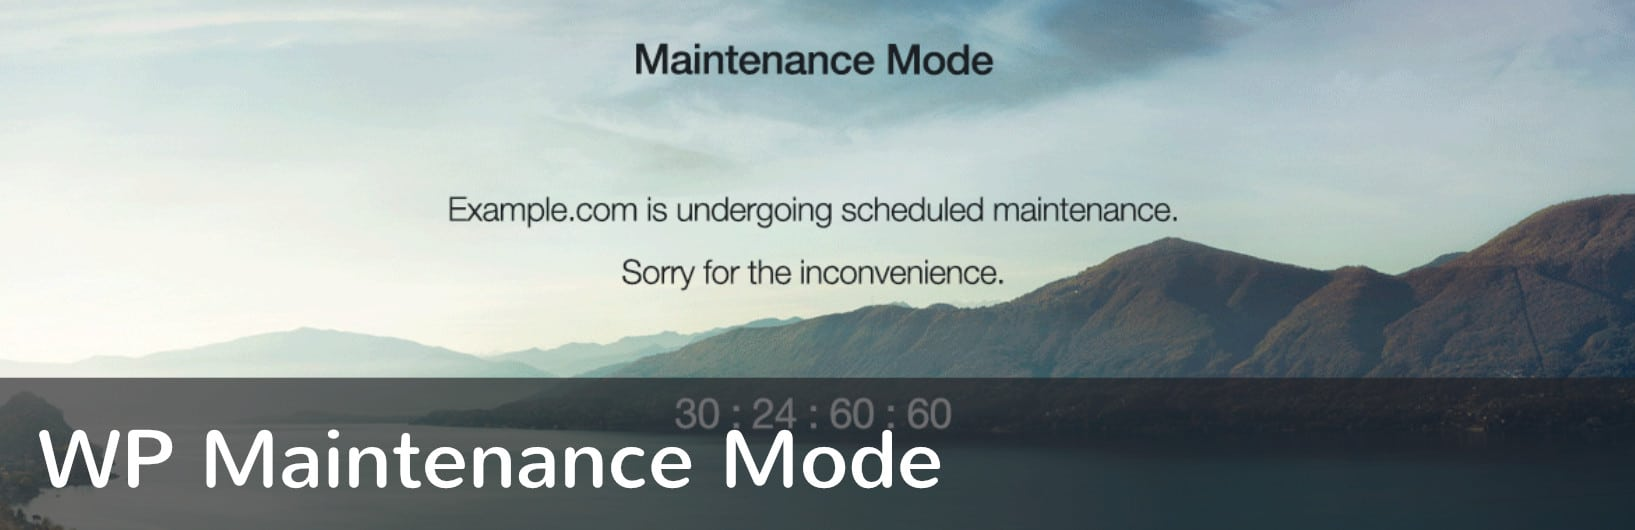 WP Maintenance Mode WordPress plugin